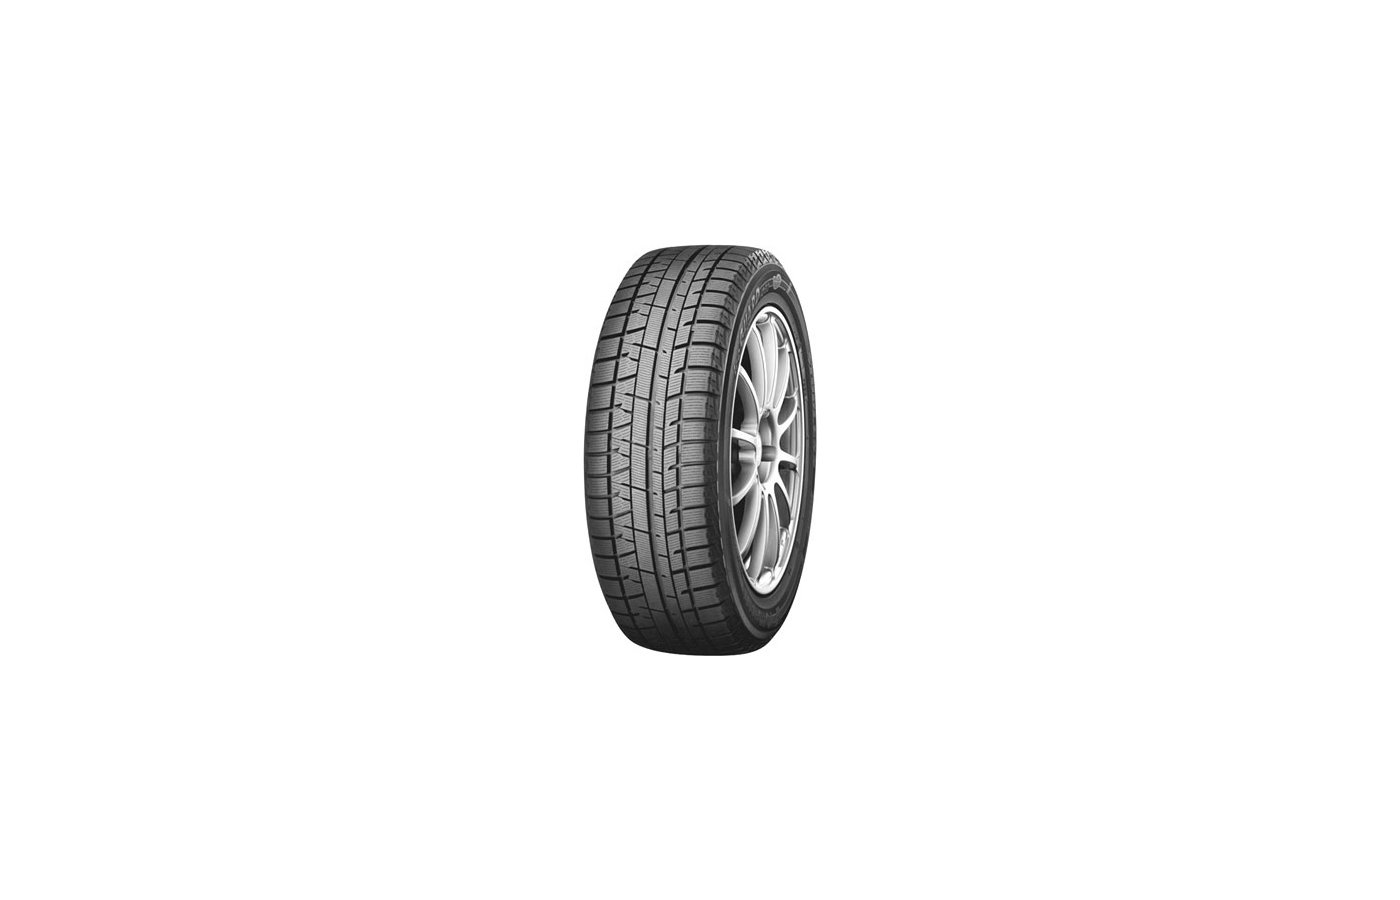 Шина Yokohama Ice Guard IG50 Plus 225/50 R17 TL 94Q